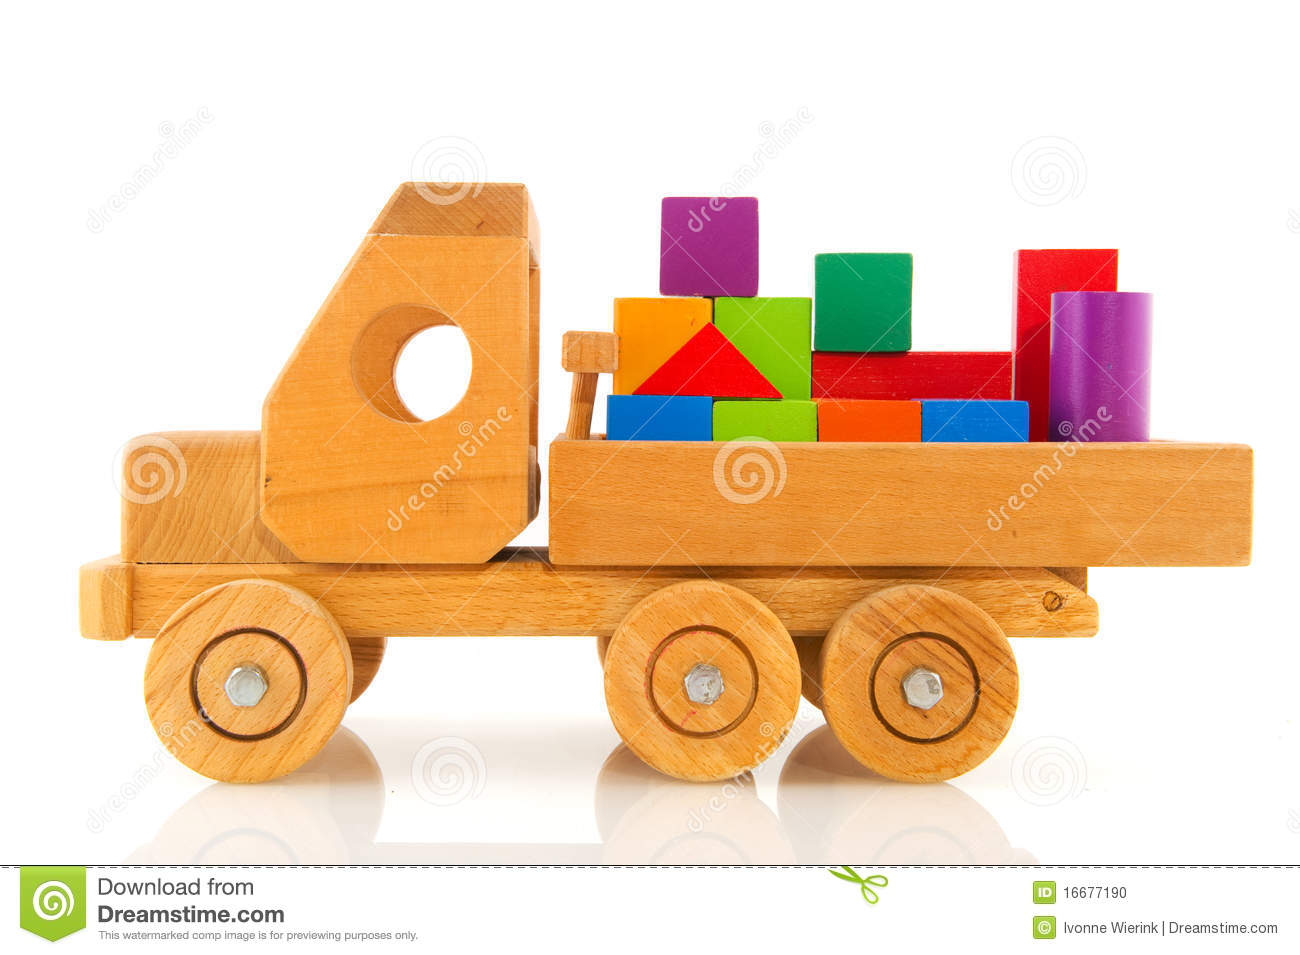 Wooden Toy Car With Colorful Blocks Stock Photo - Image: 16677190